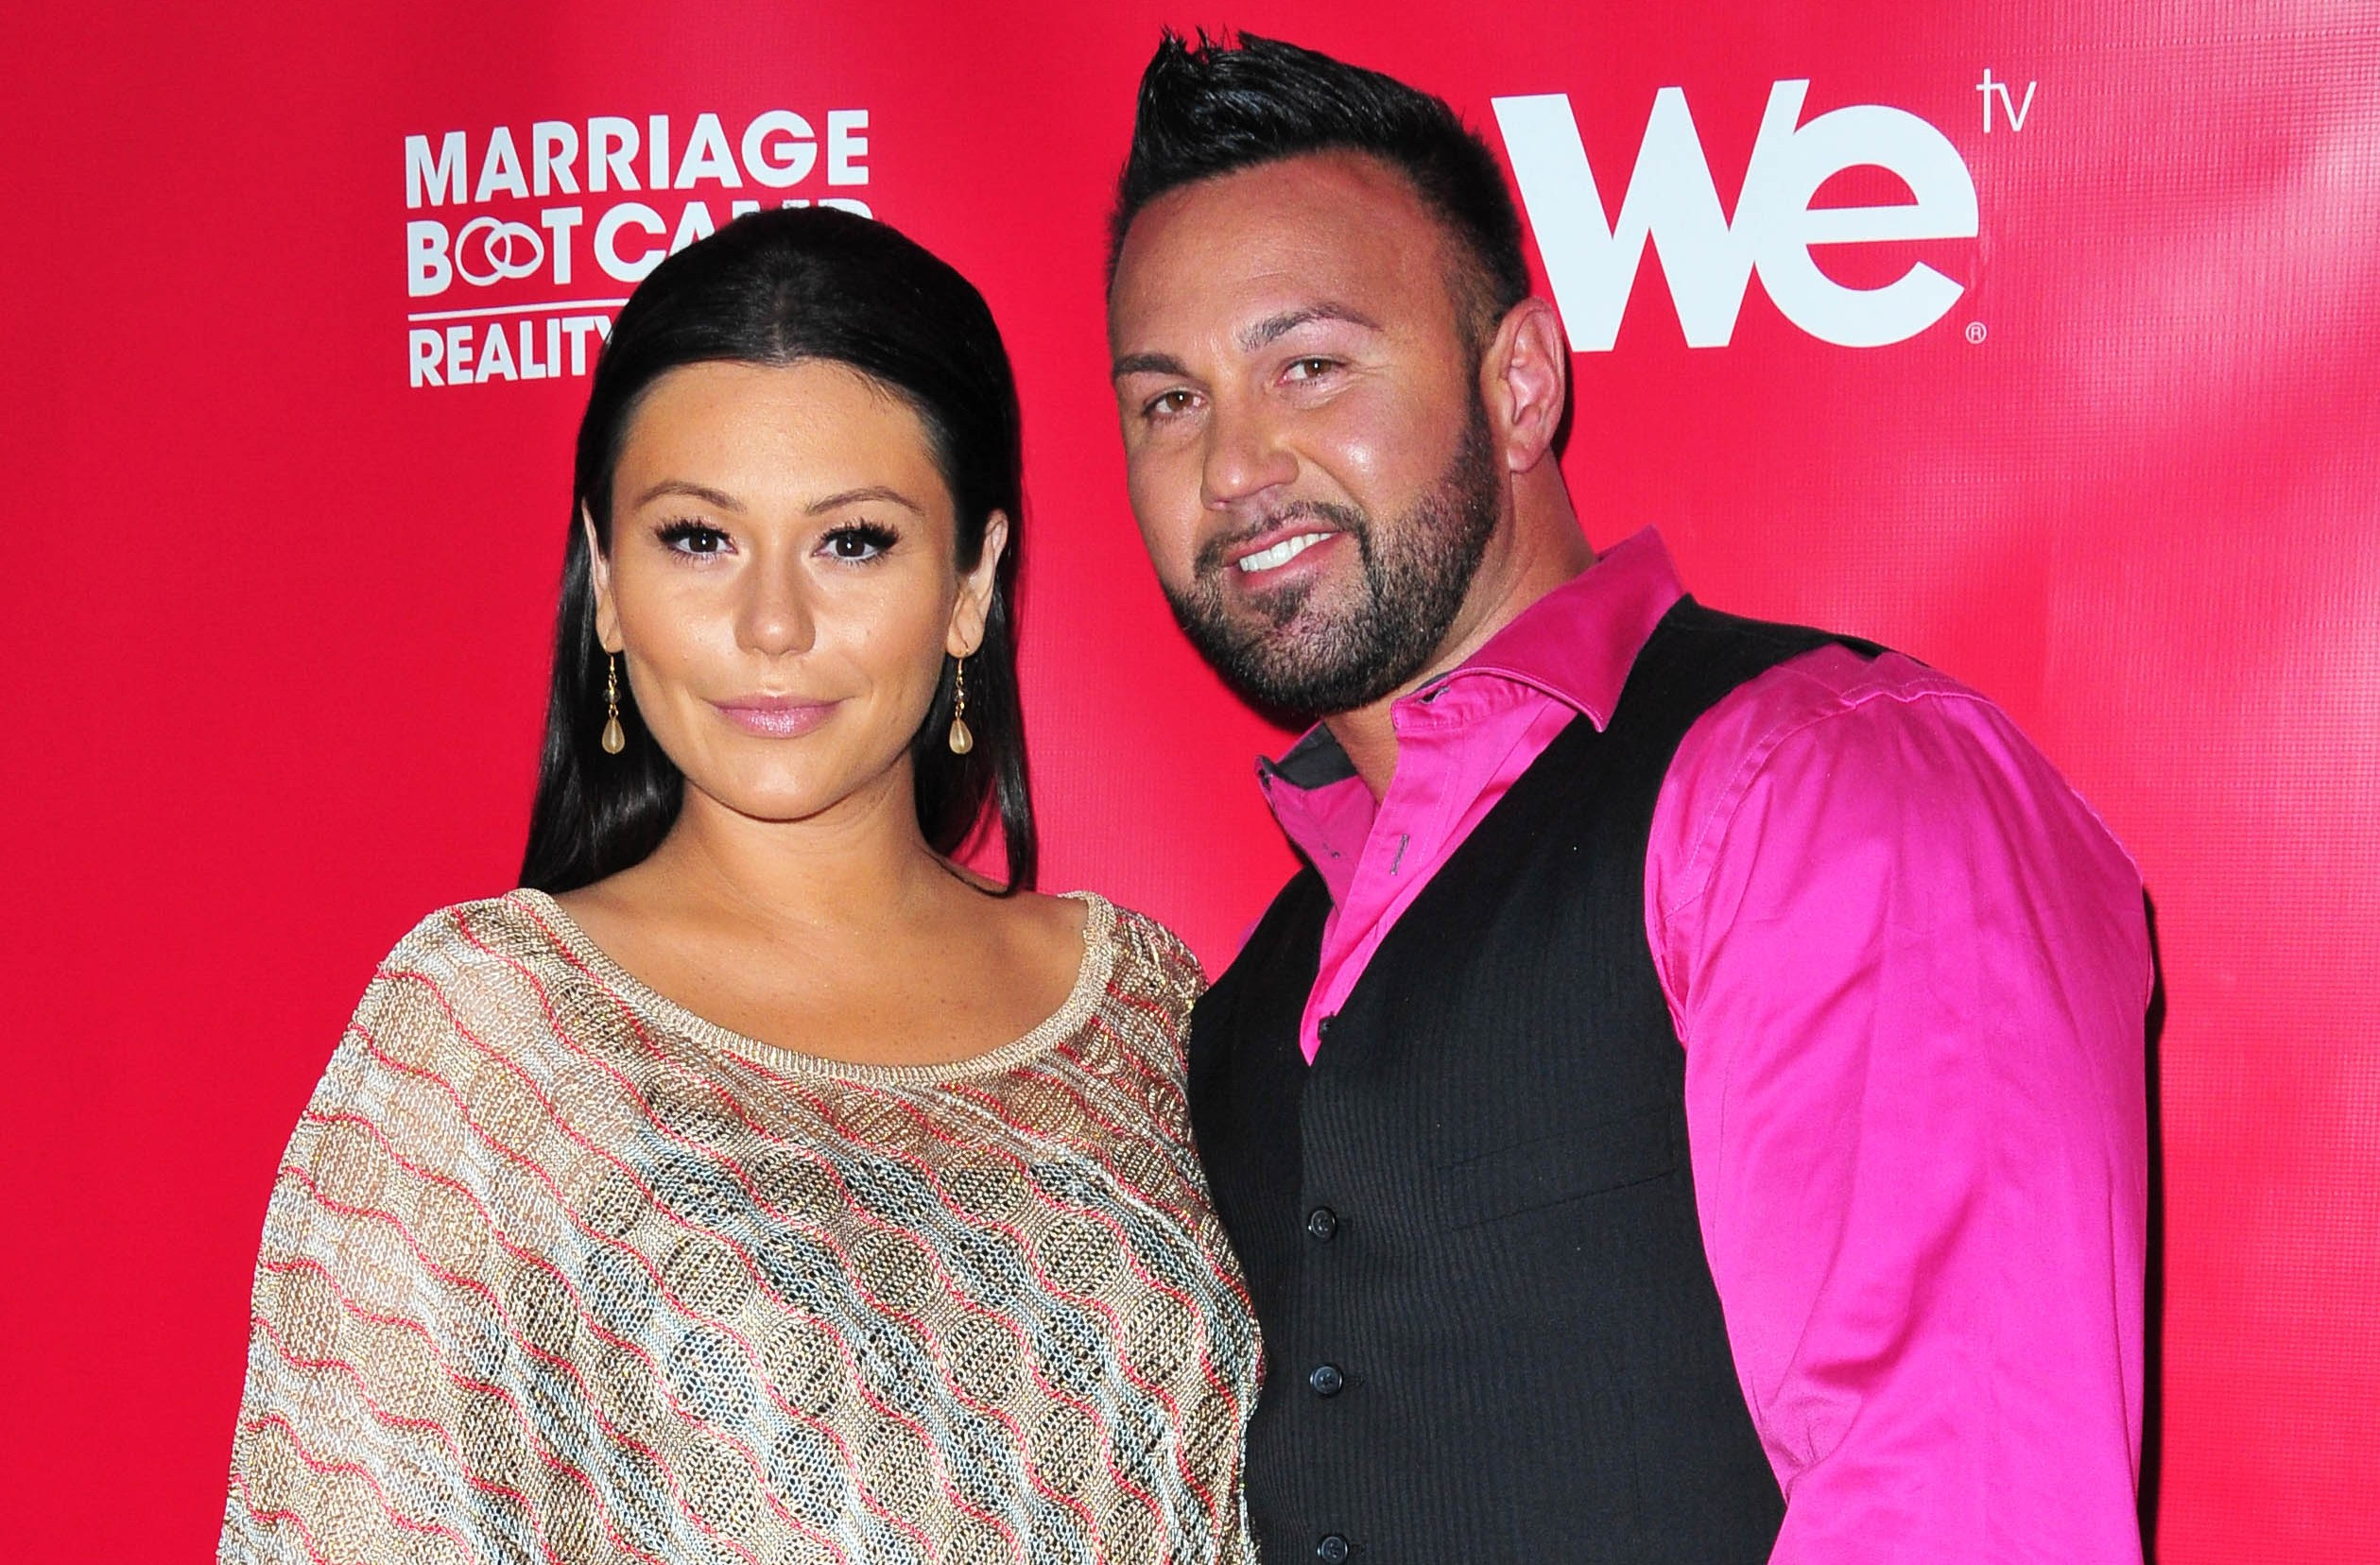 Pictured: JWoww Jenni Farley and Roger Mathews